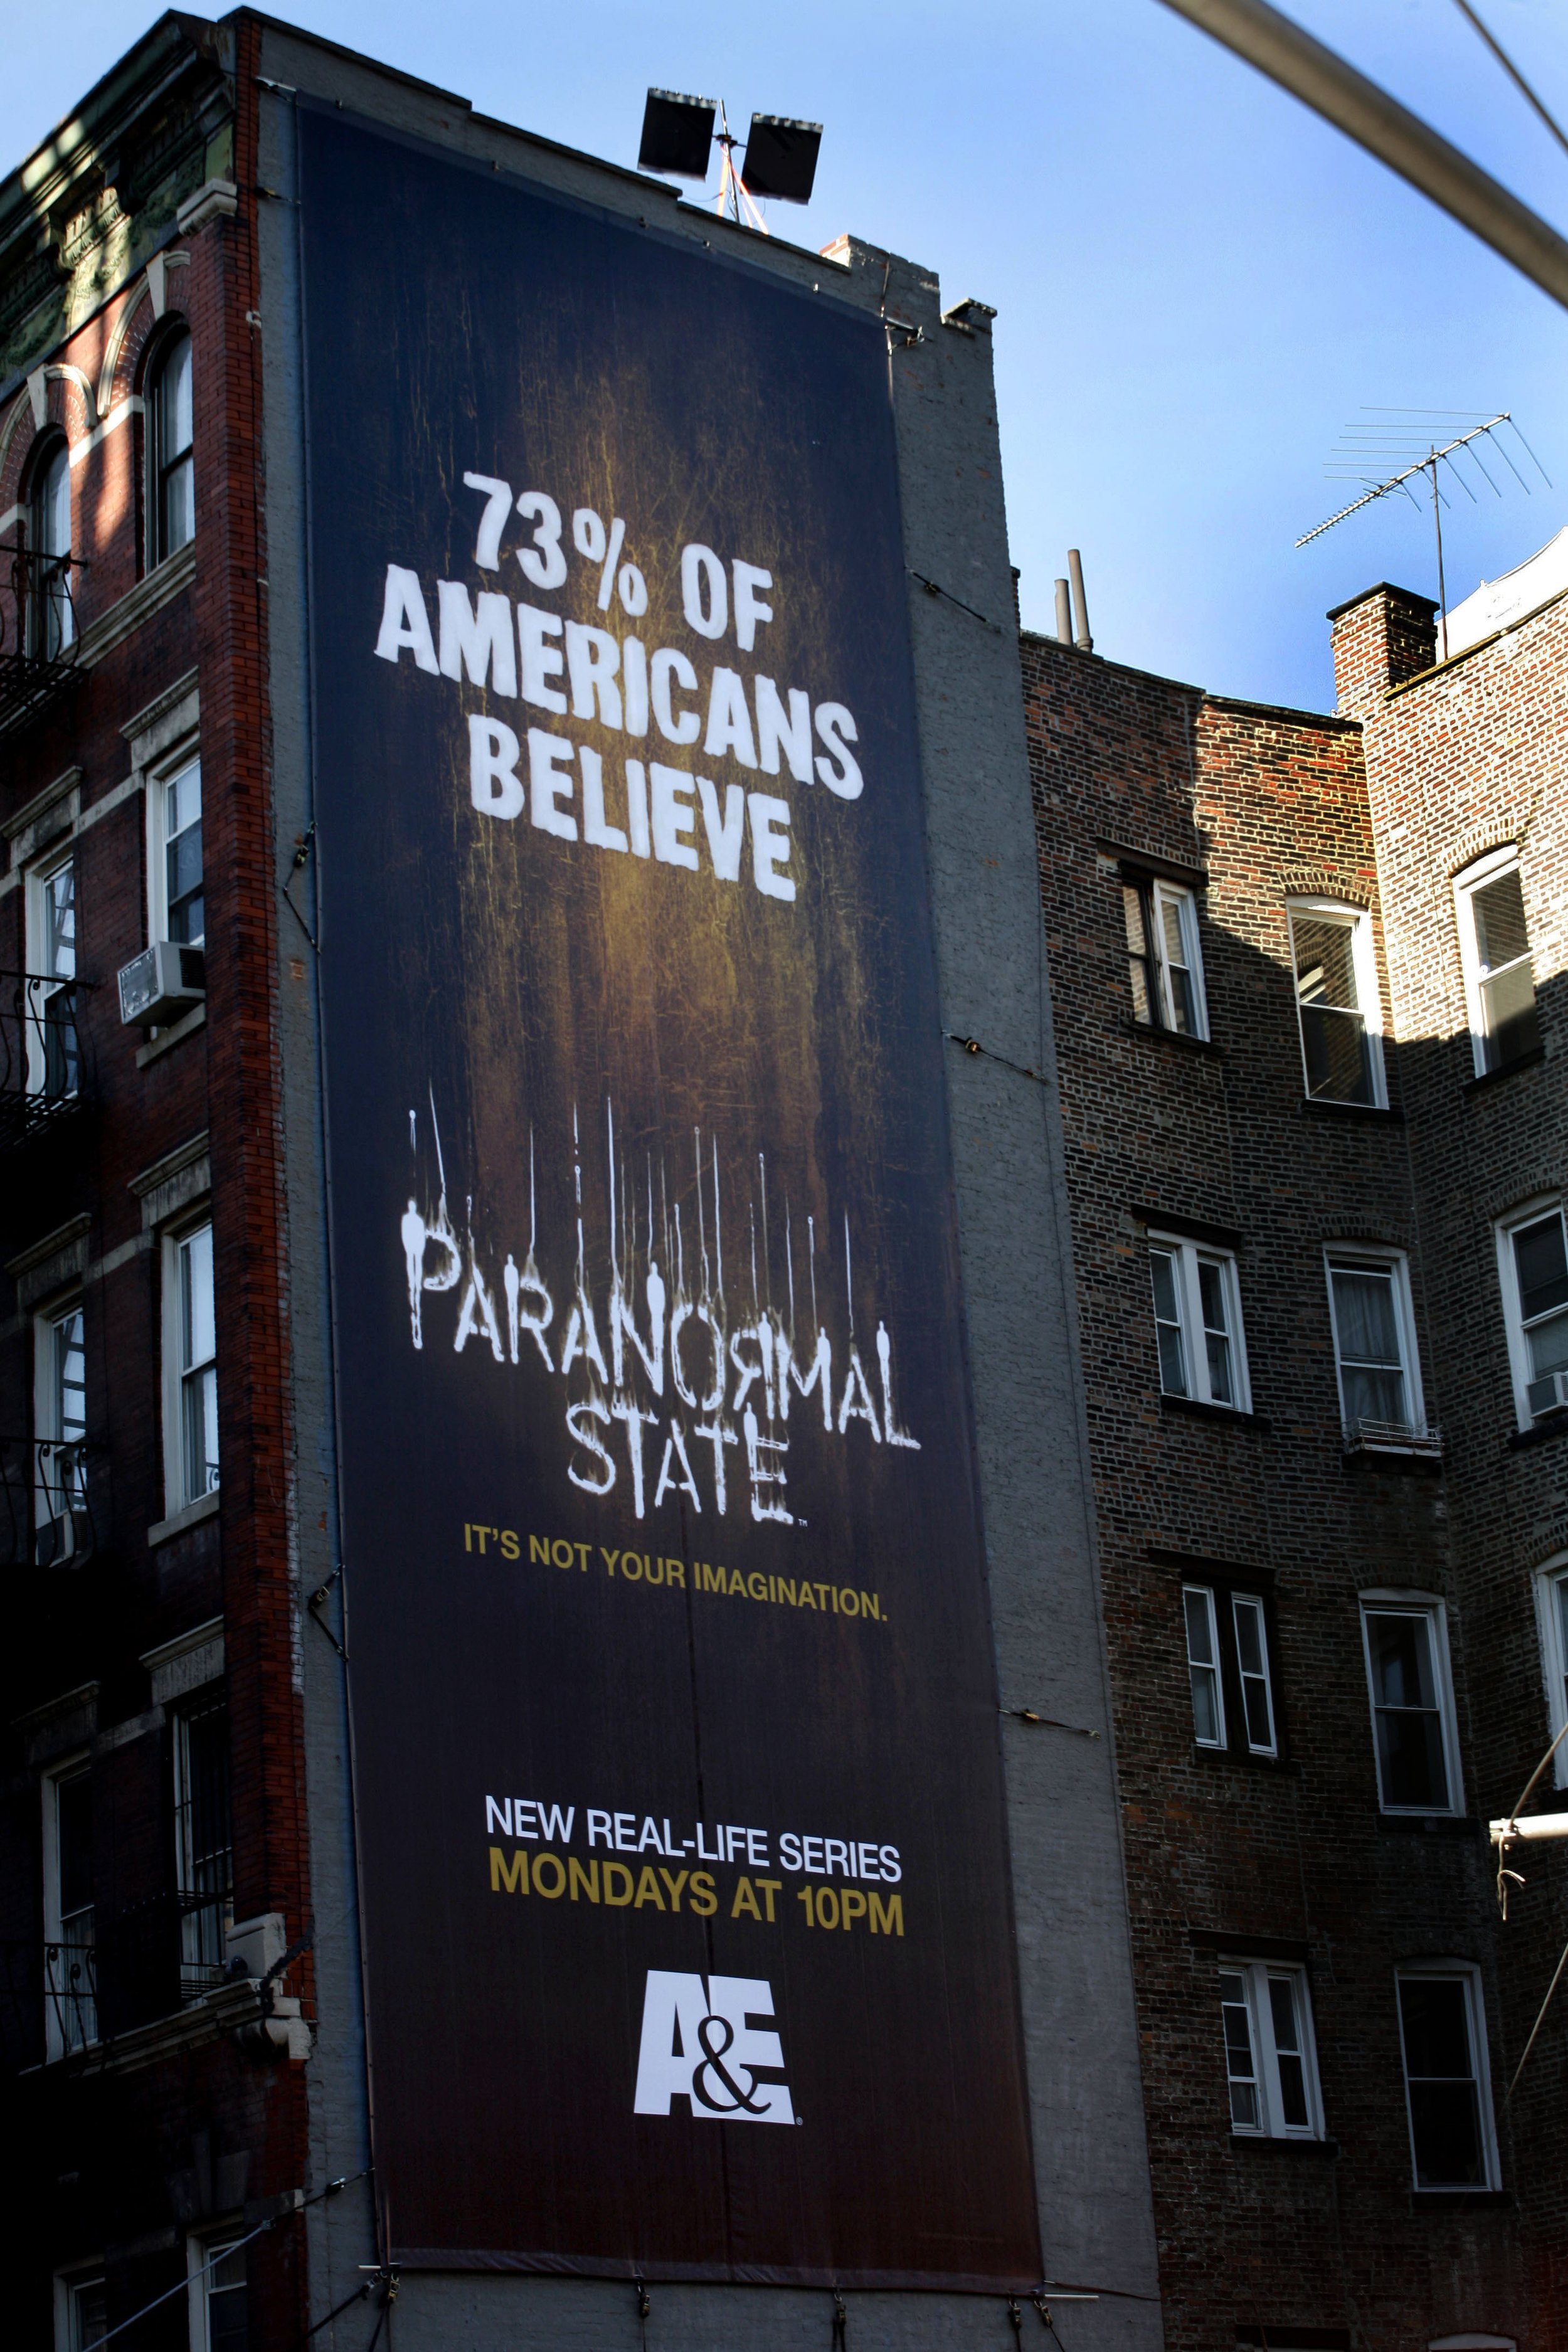 Paranormal Billboard from AE.jpg